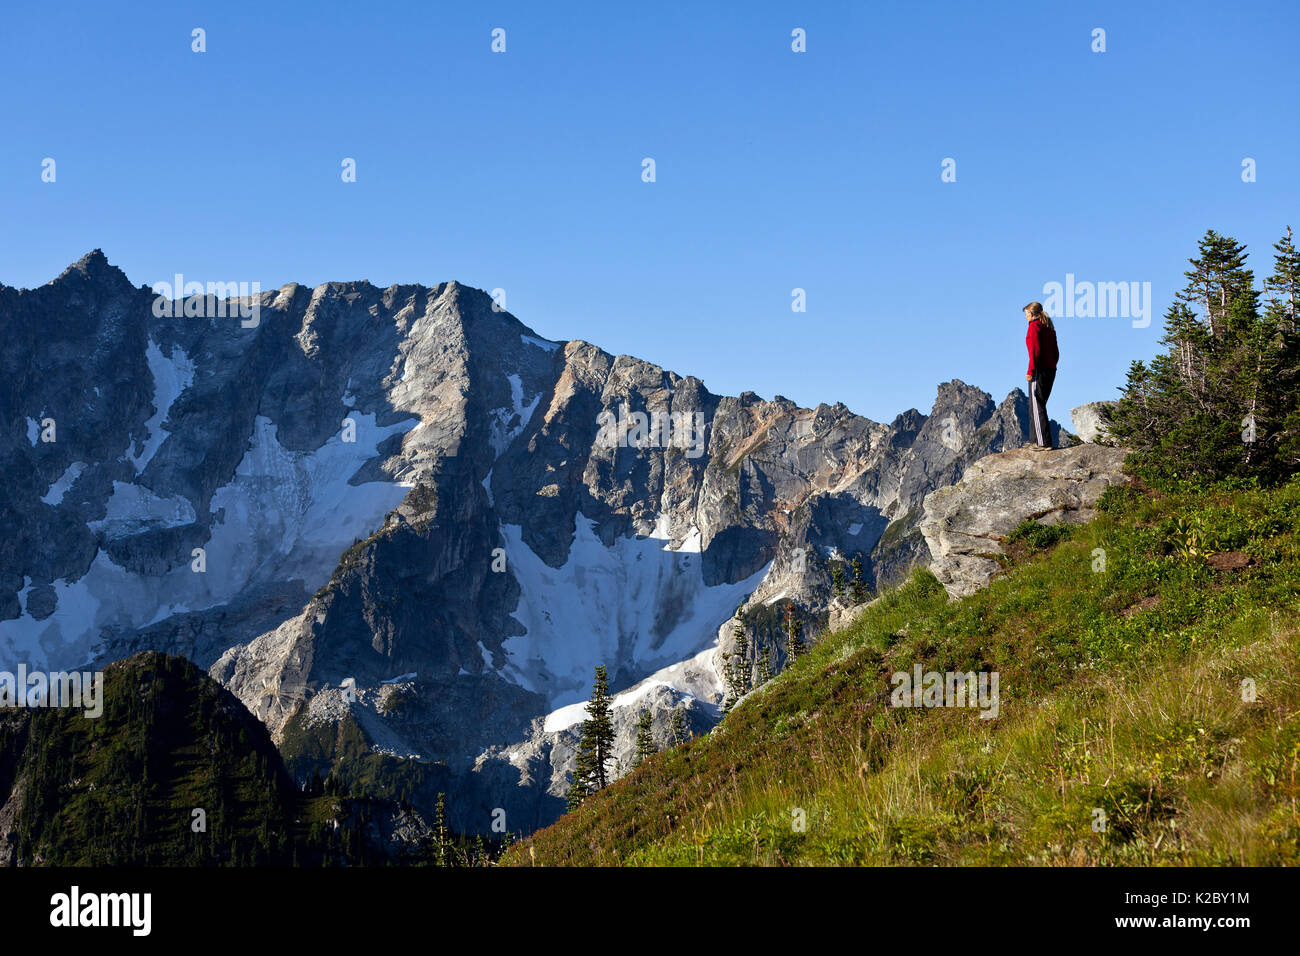 Woman looking at view, Cascade Mountains, Liberty Cap, Buck Creek Pass, Glacier Peak Wilderness, Wenatchee National Forest, Washington, USA. September 2014. - Stock Image